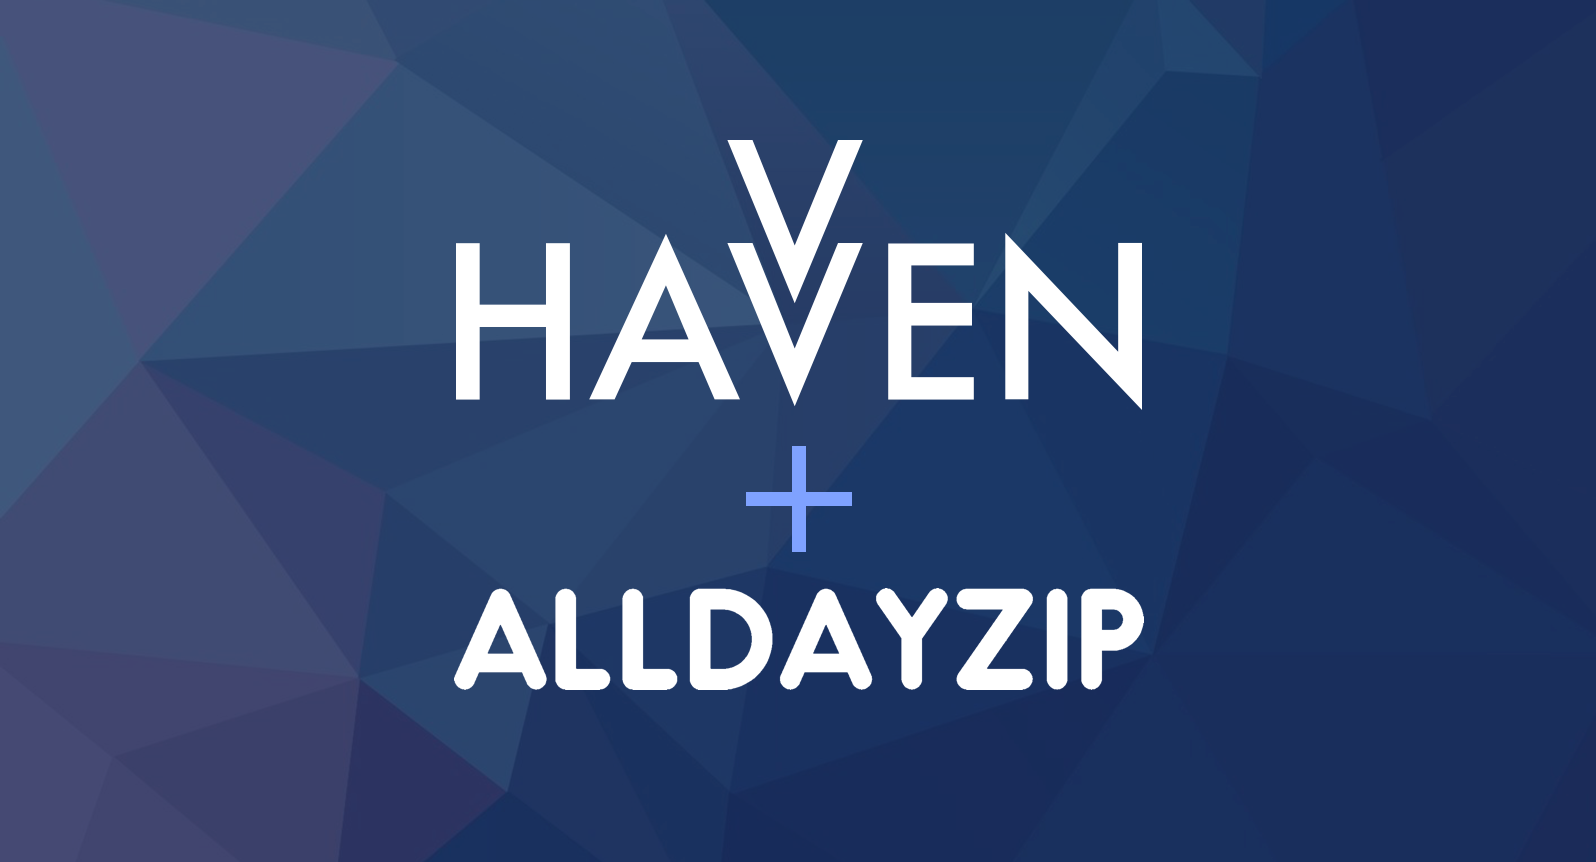 Introducing AllDayZip